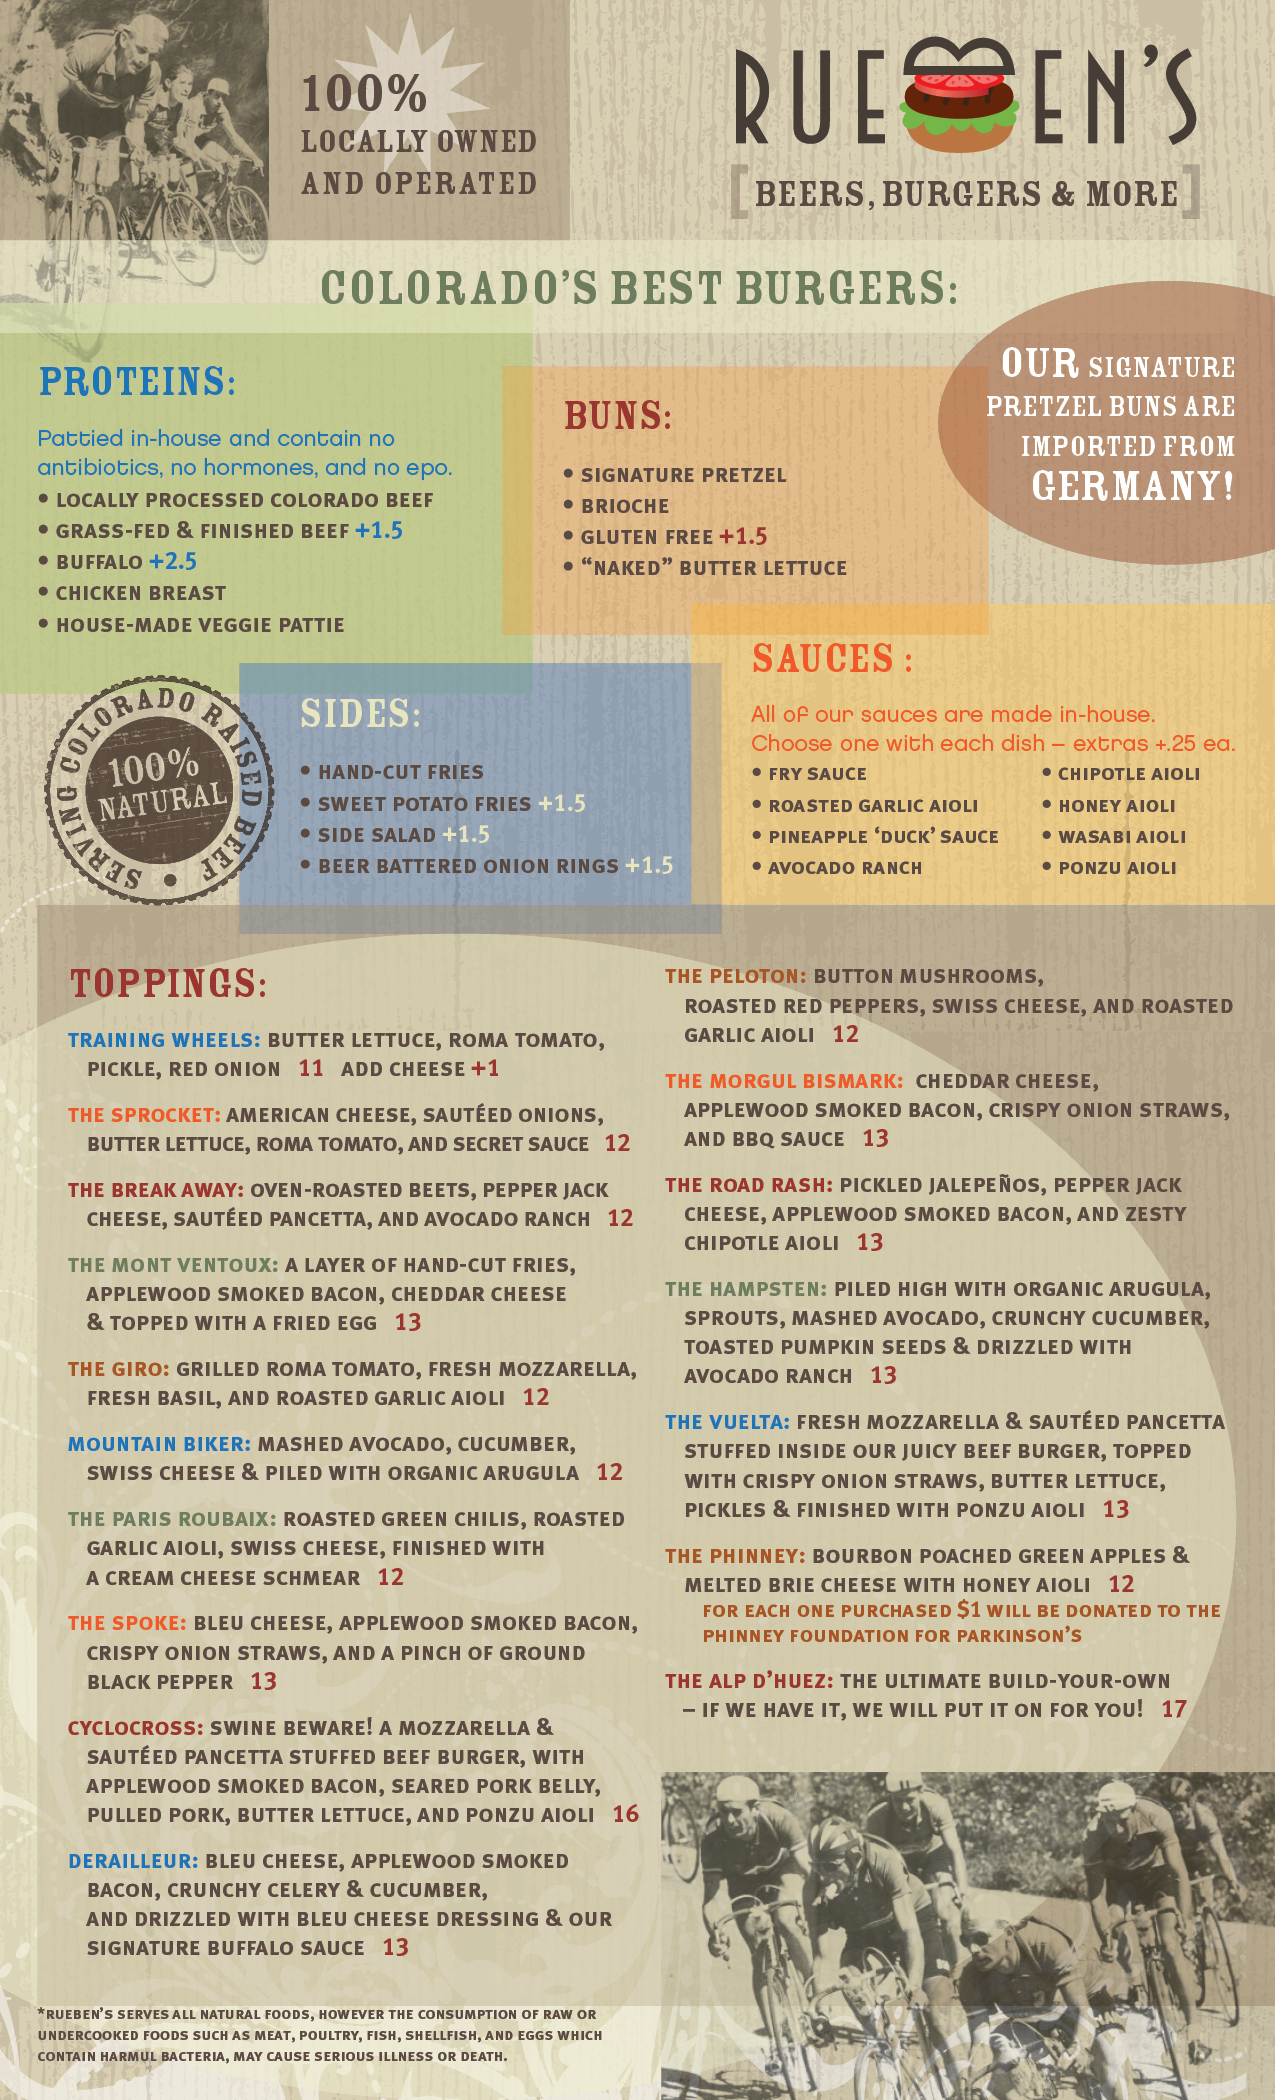 7.0_Rueben's Menu_side 2